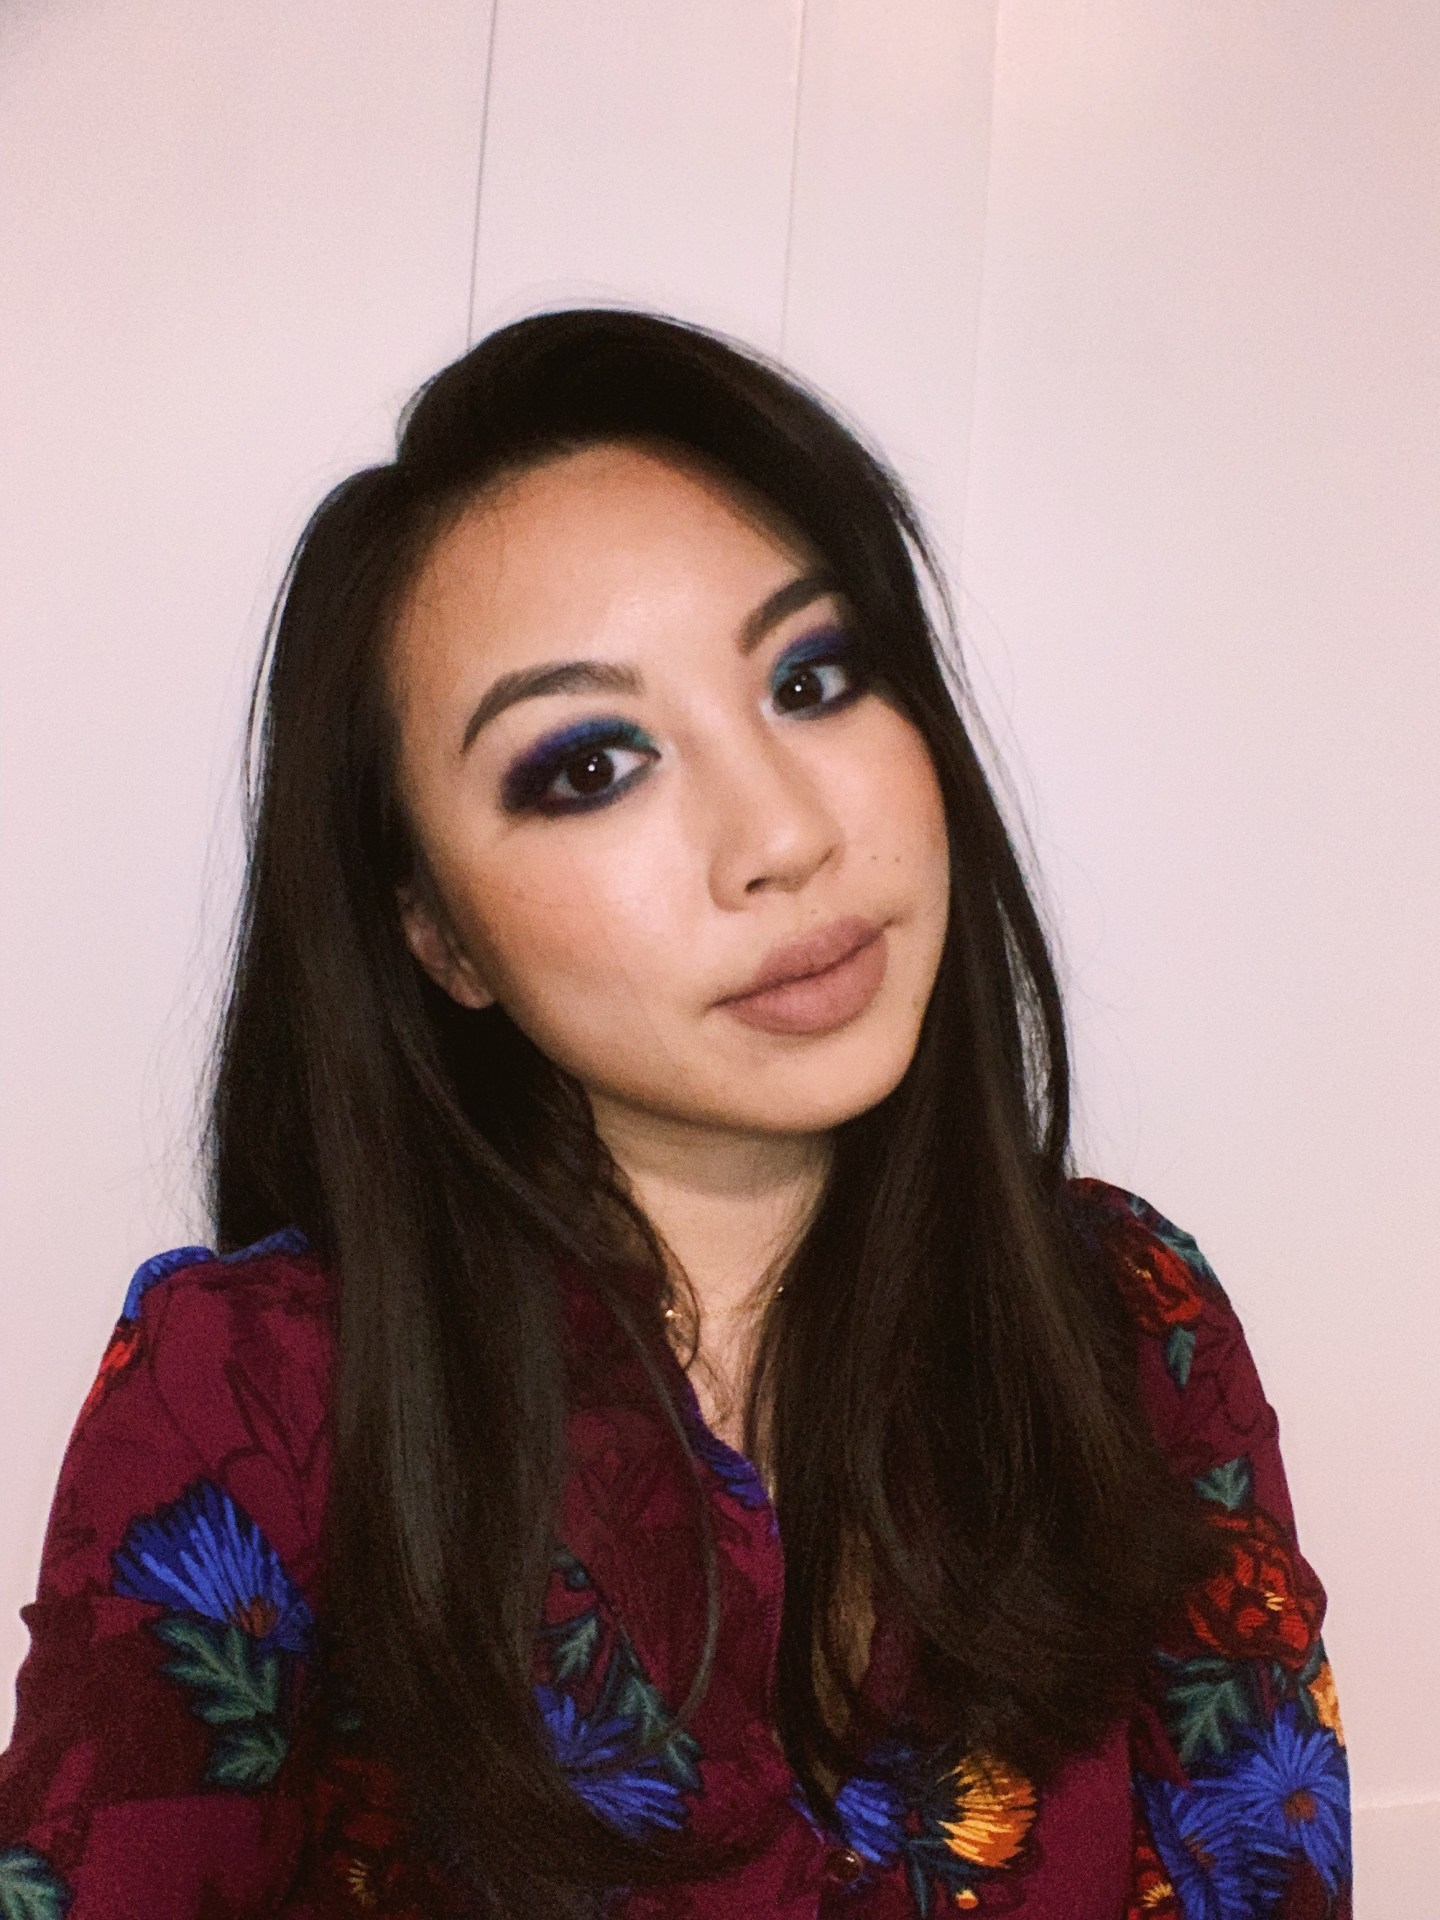 Stars & Signs Beauty Lookbook: Pisces